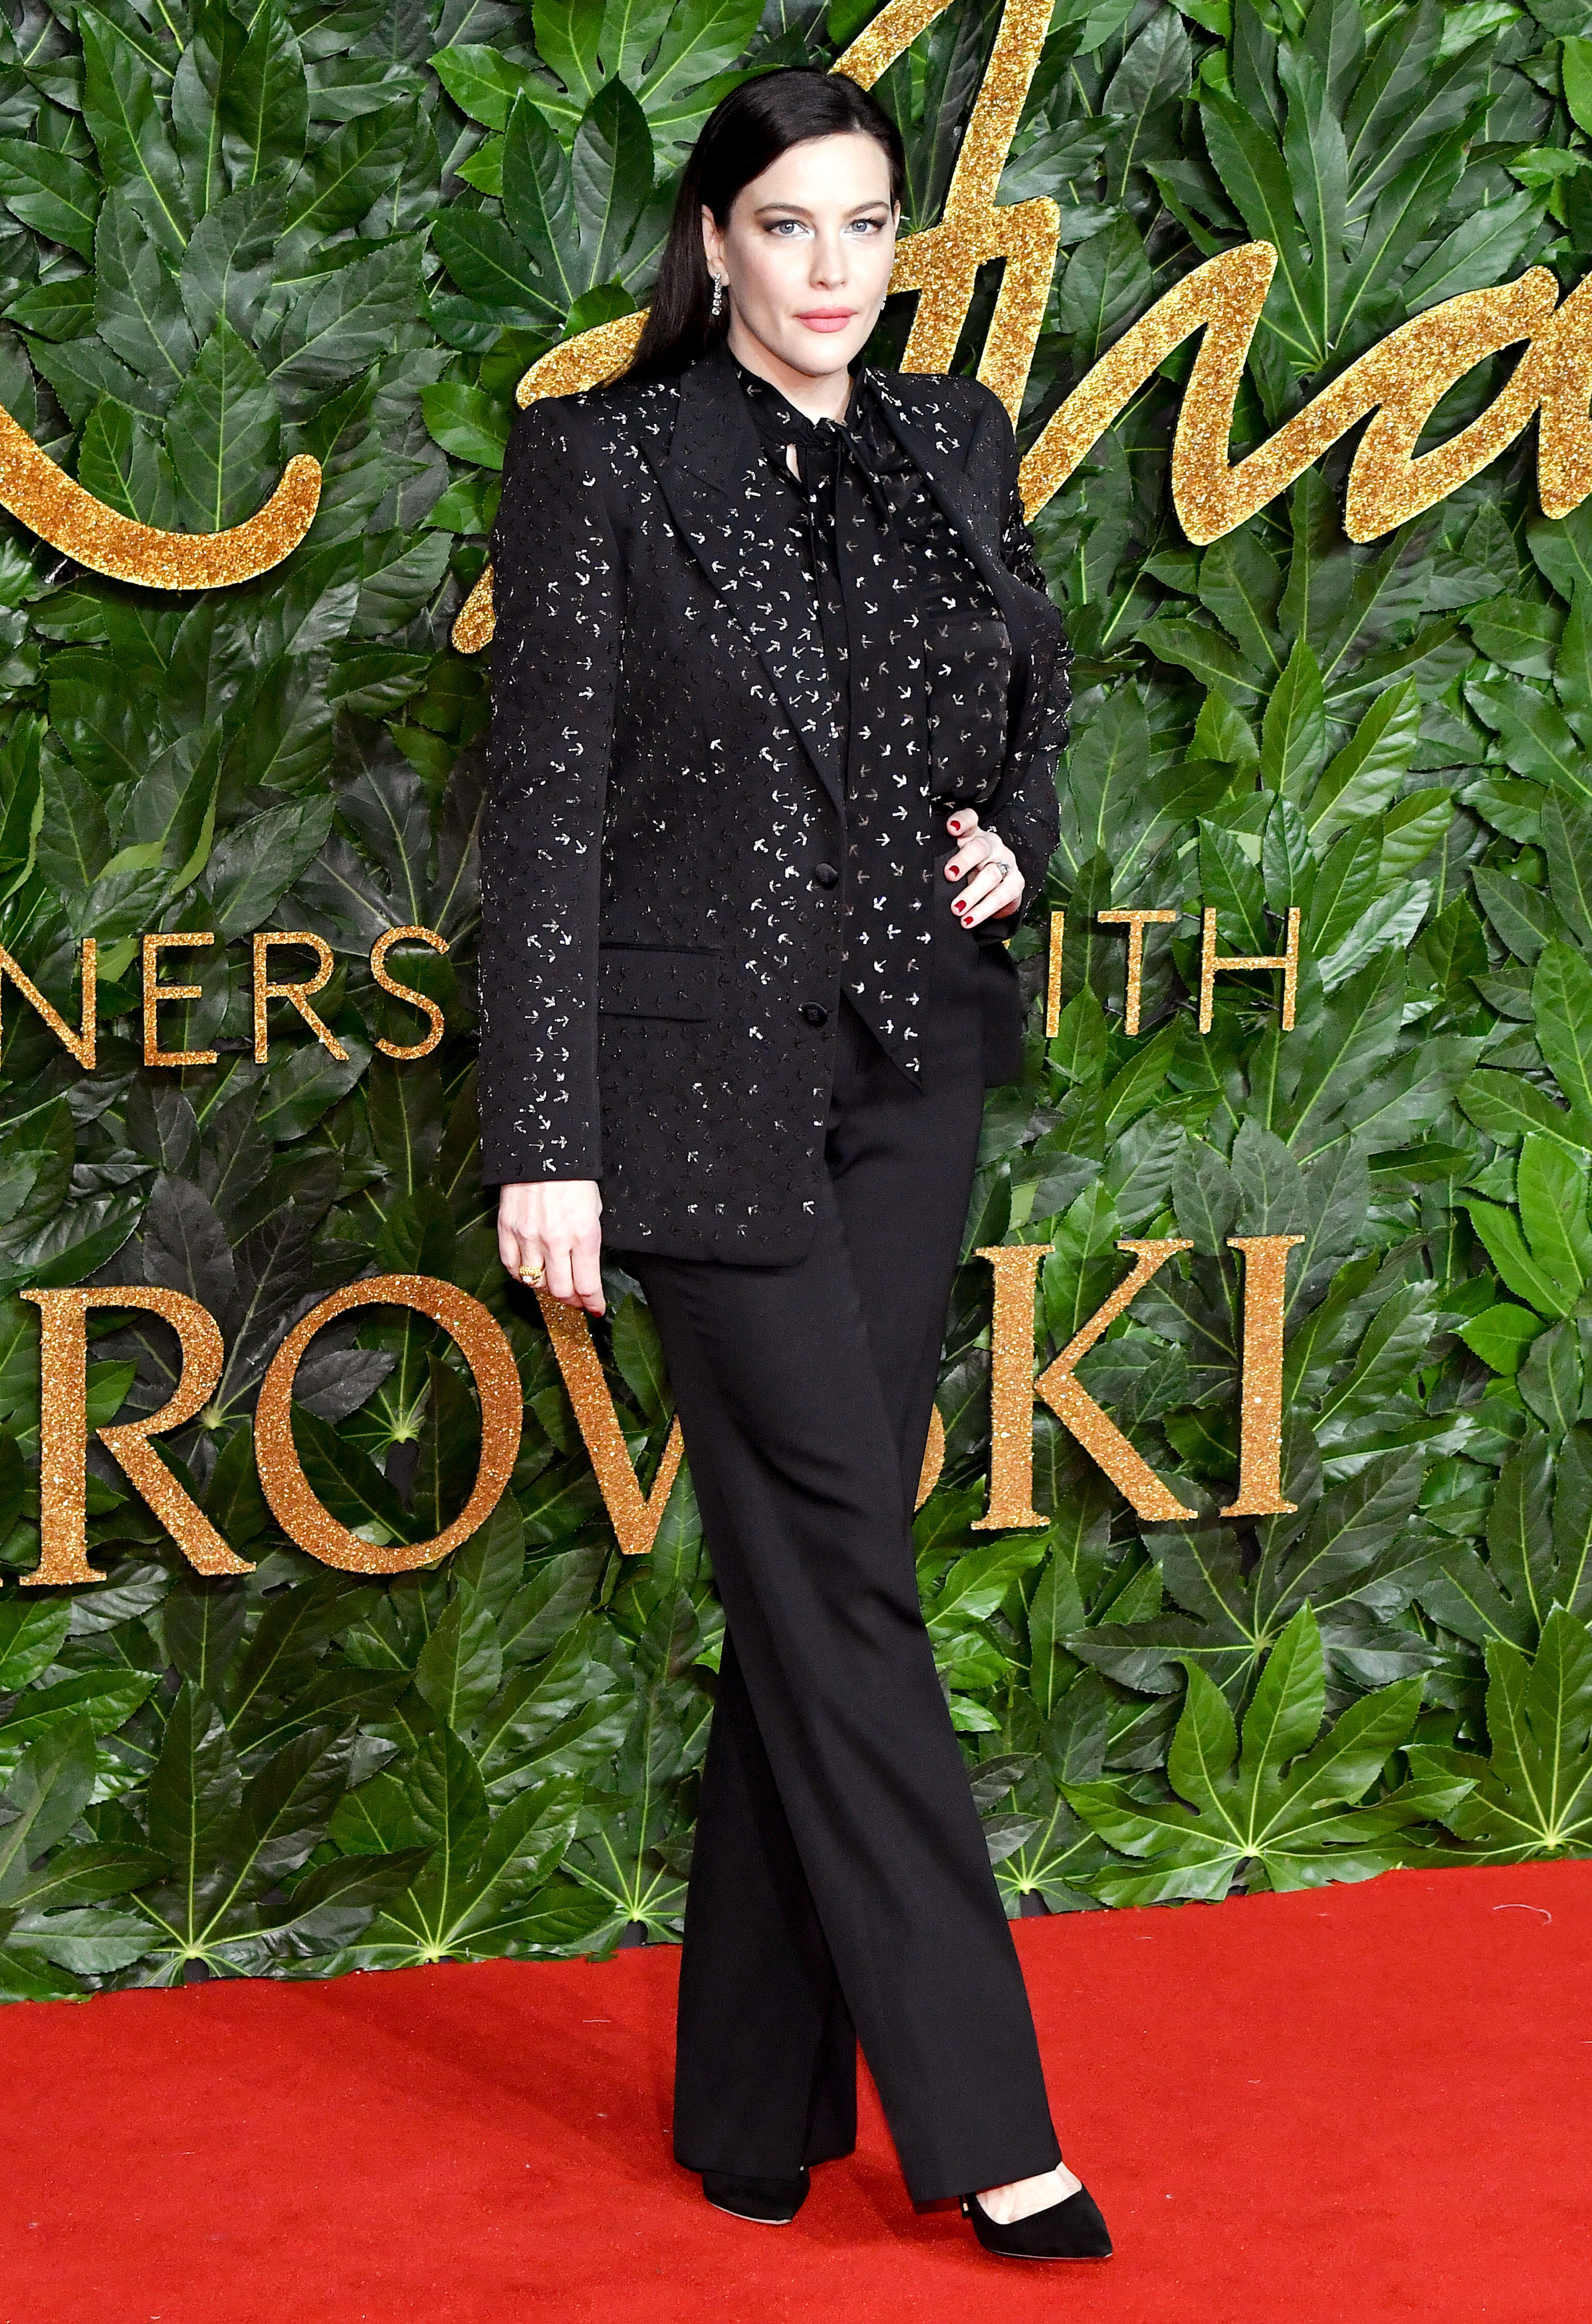 Liv-Tyler - The actress was suited up in a sparkling black blazer and matching top.